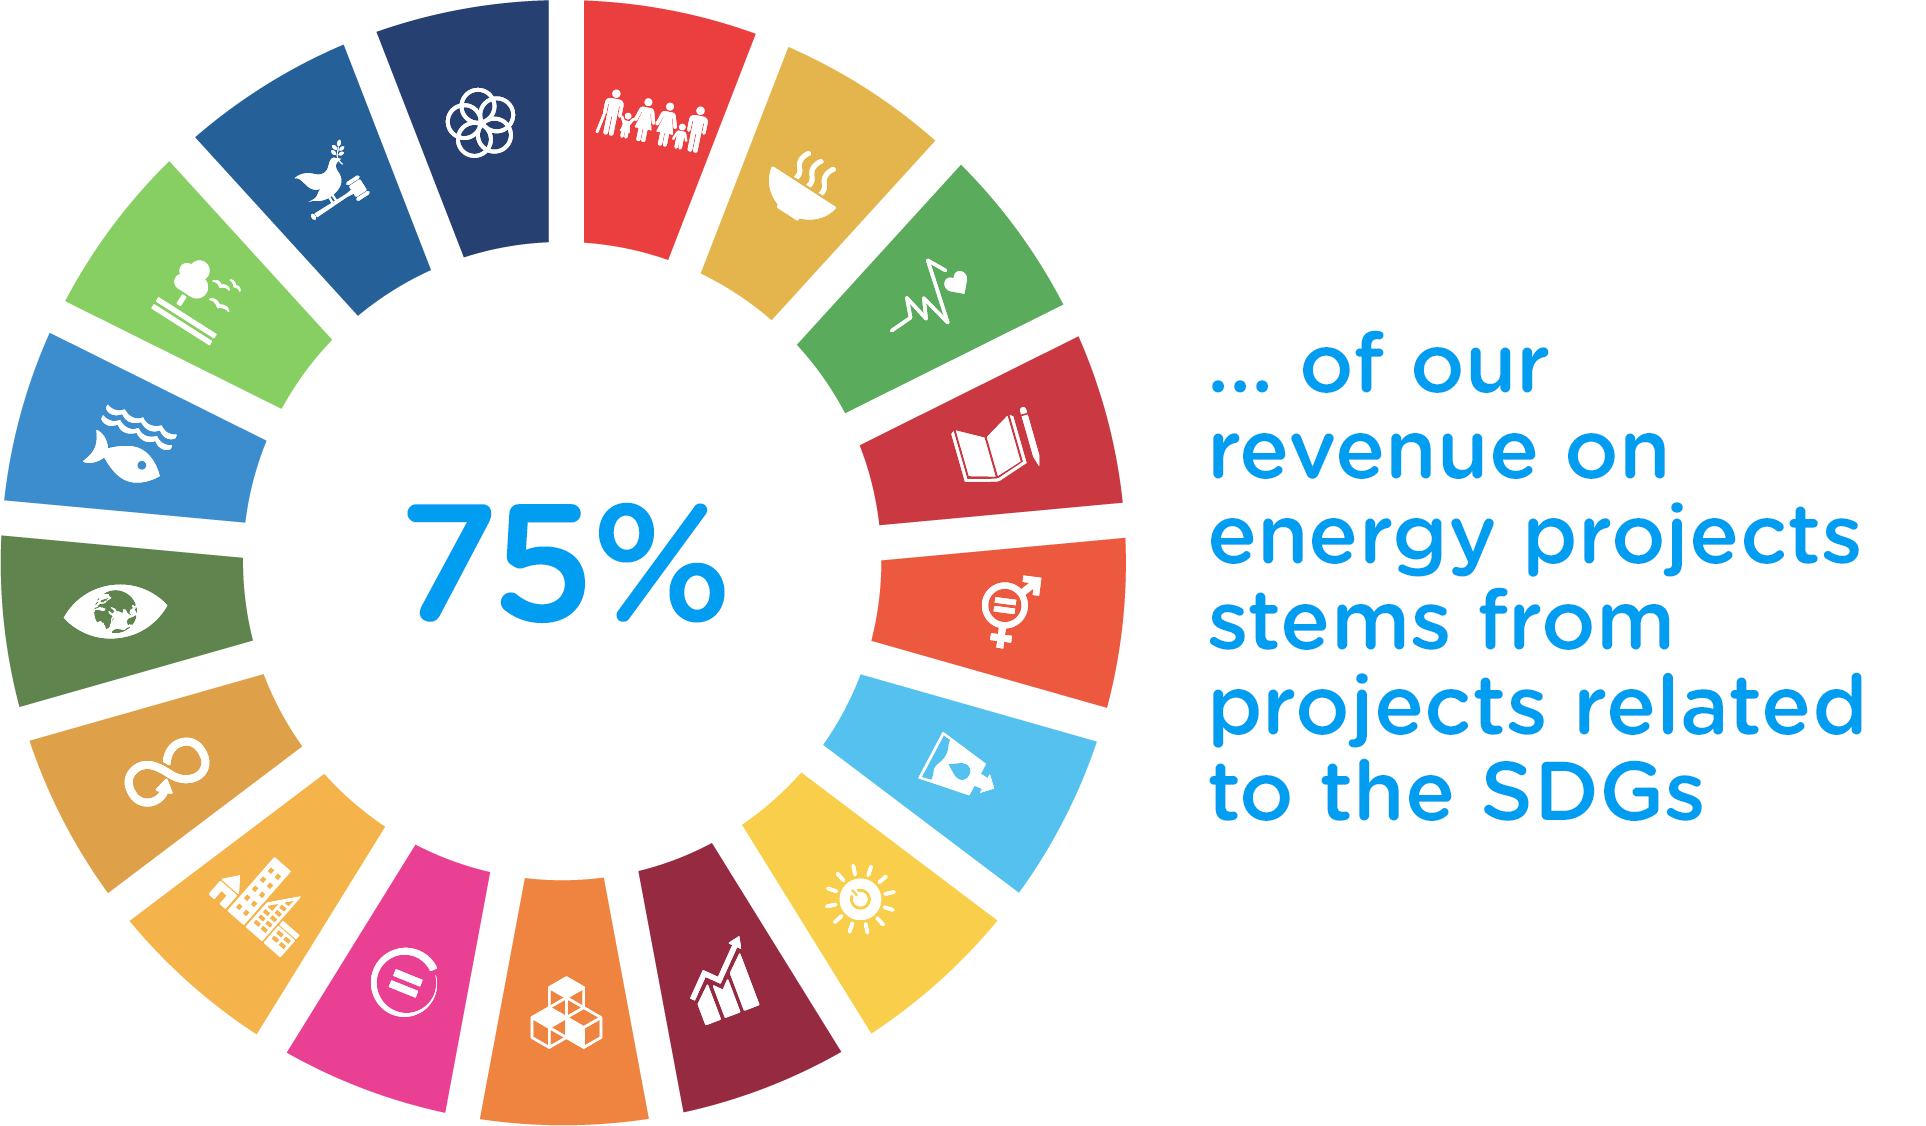 75% of our revenue on energy projects stems from projects related to the SDGs